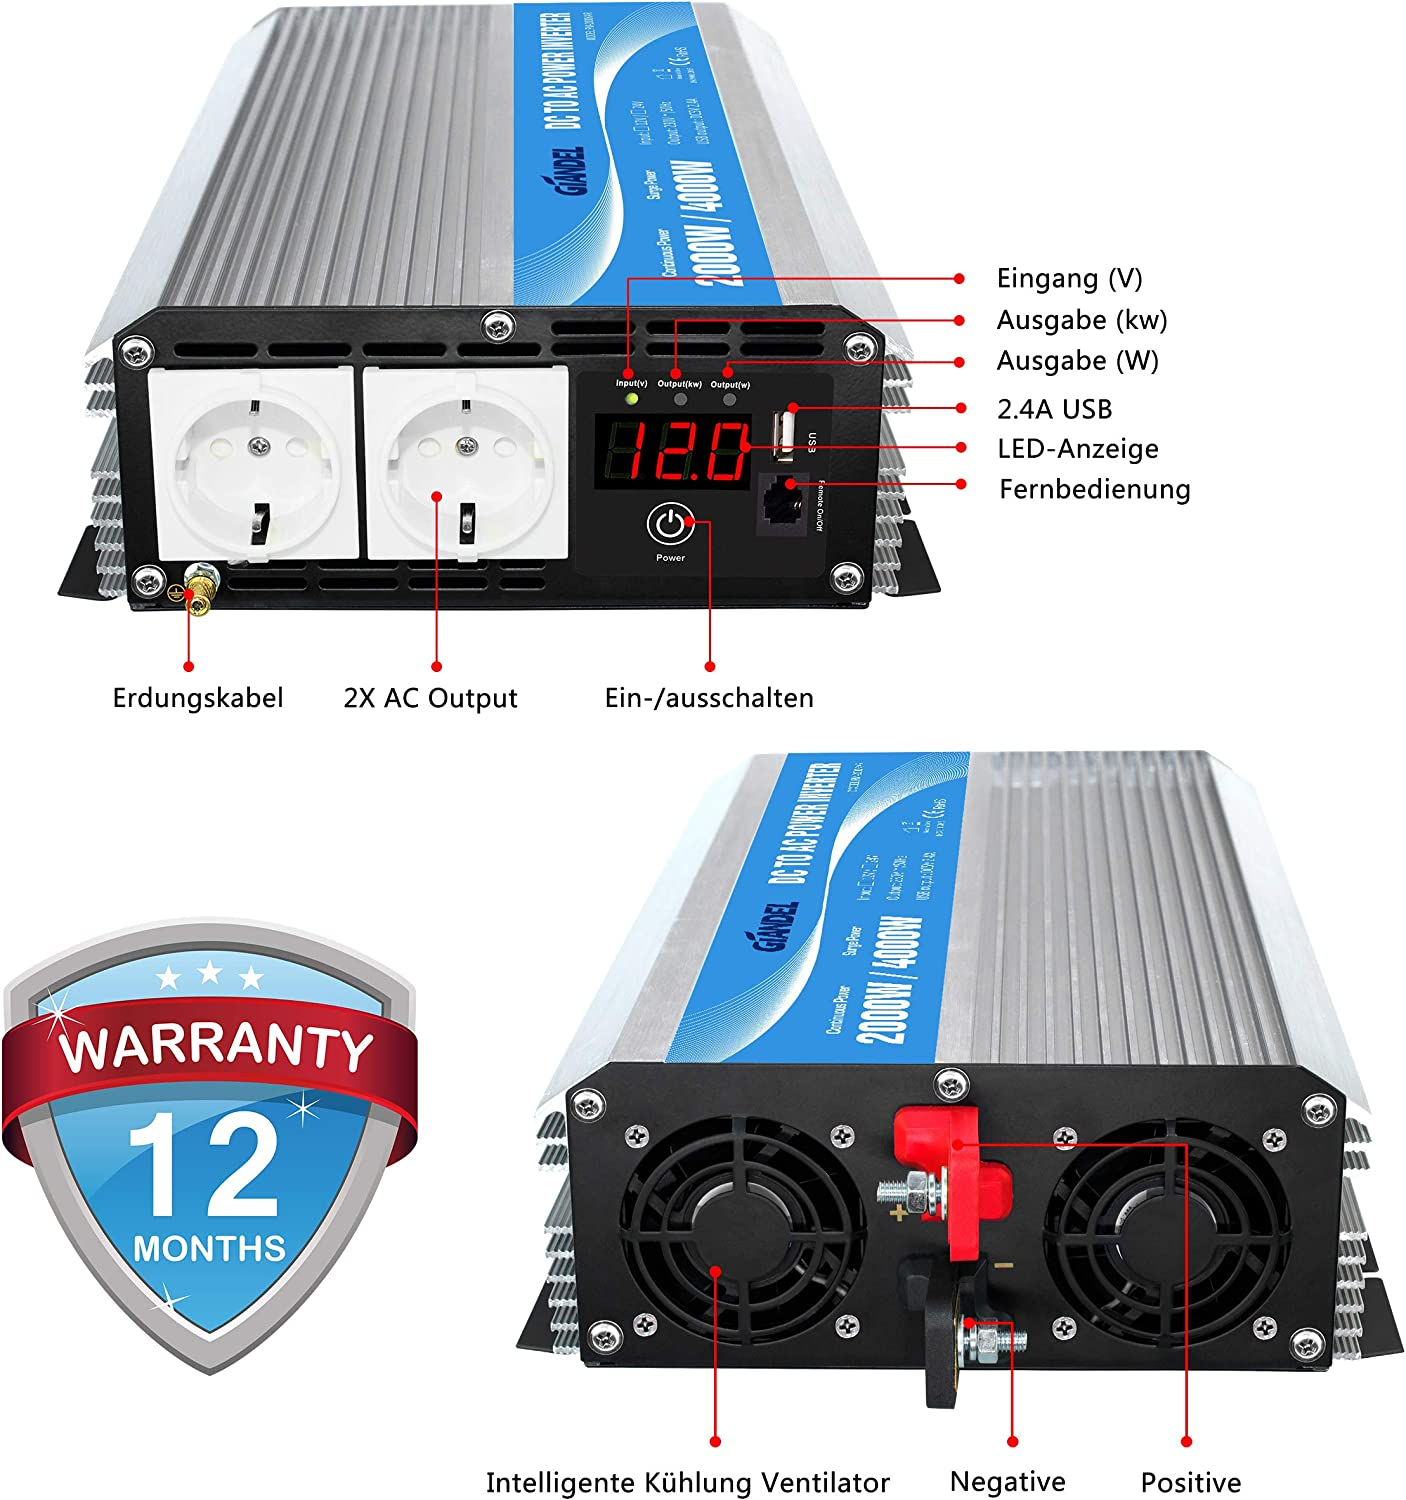 Giandel Power Inverter 2000 W 12 V To 230 V Voltage Converter With Remote Control And Led Display 2 Ac Outlets And Usb Connection For Motorhomes Lorries Cars Navigation Car Hifi